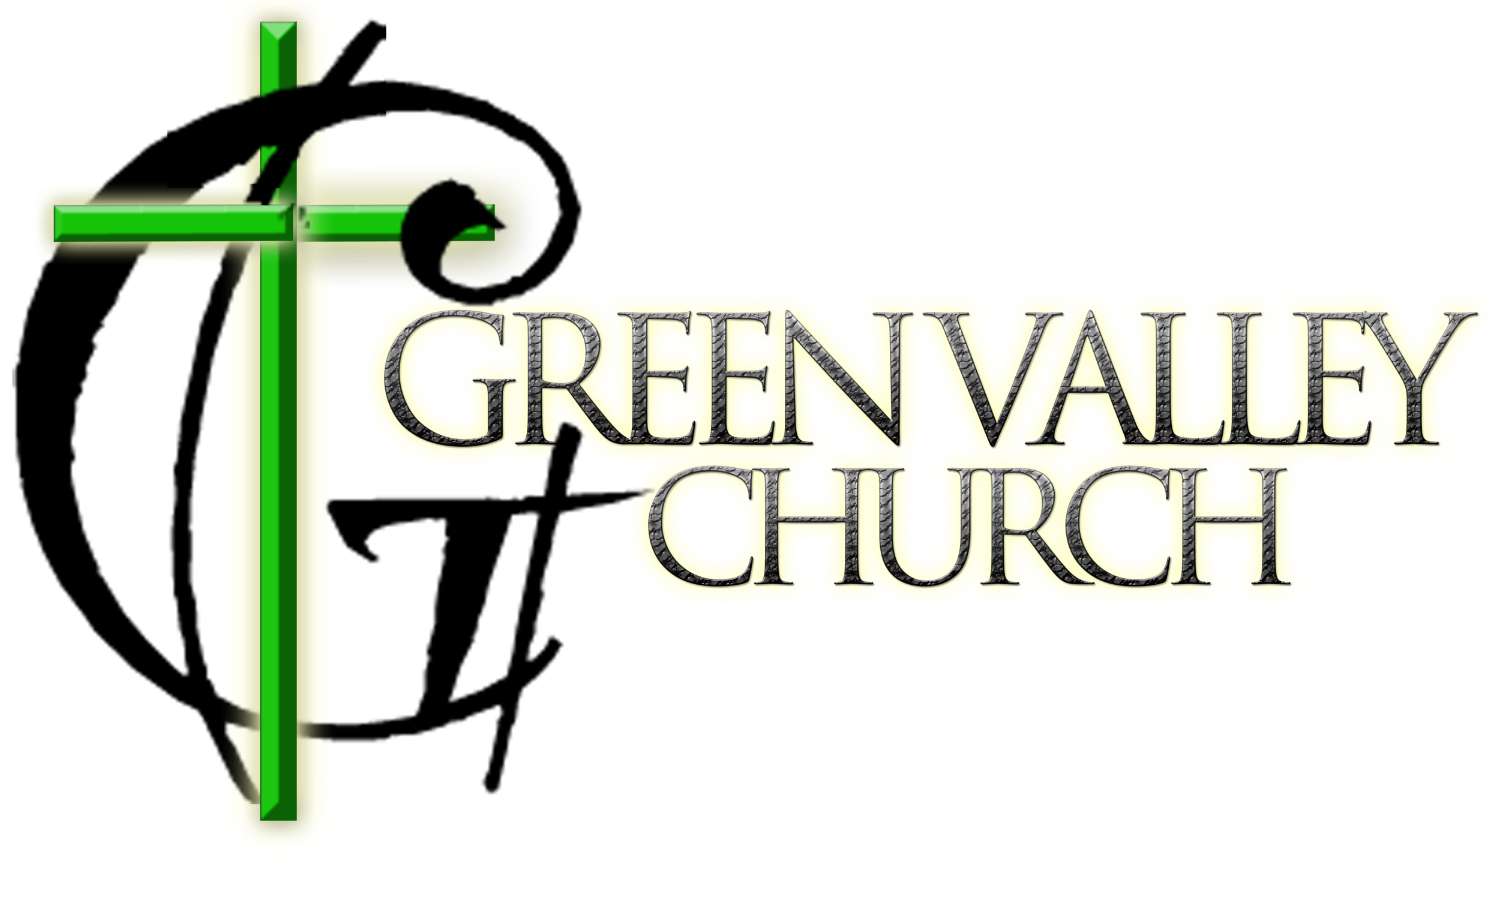 Green Valley Church